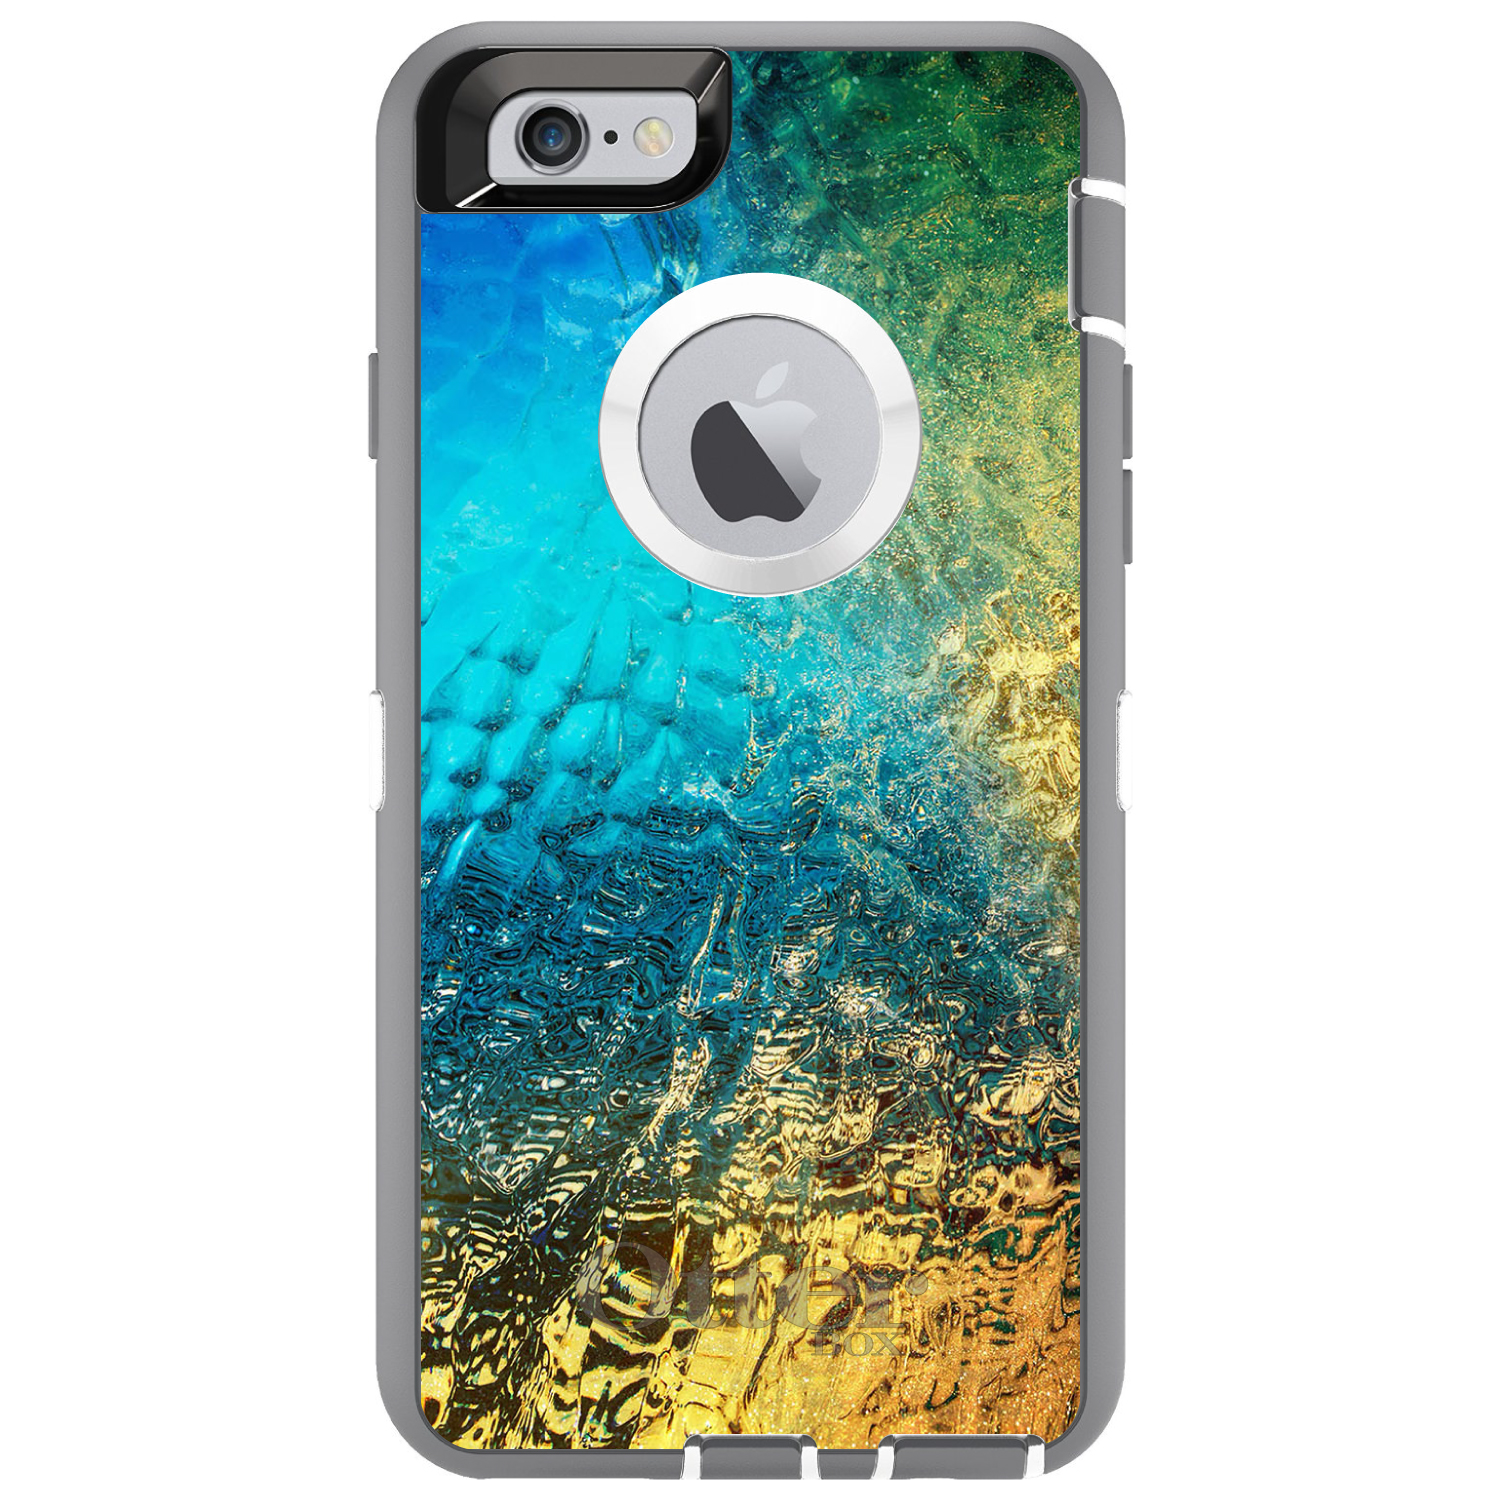 """DistinctInk™ Custom Grey OtterBox Defender Series Case for Apple iPhone 6 / 6S (4.7"""" Screen) - Colorful Rainbow Waterfall"""